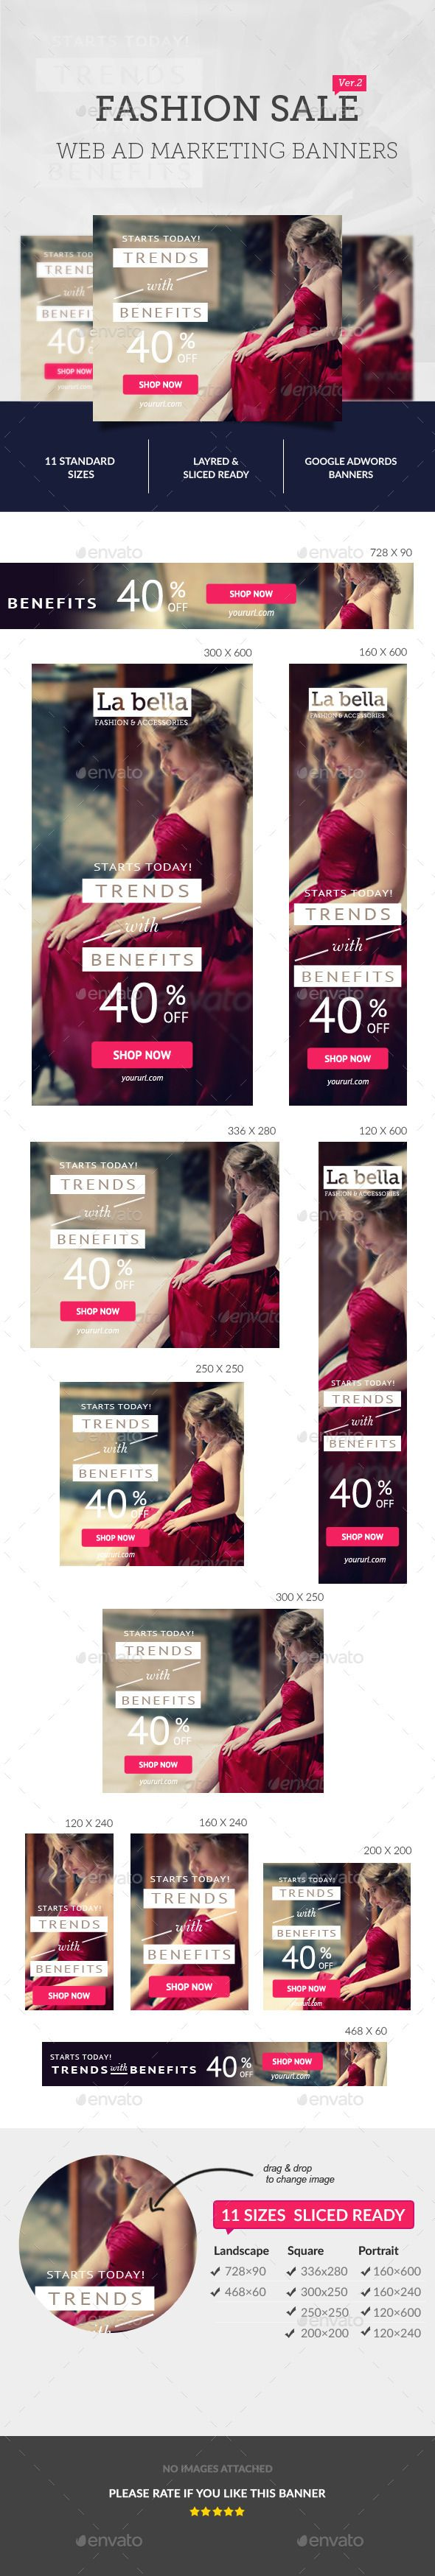 408 best Web Banner Inspiration images on Pinterest | Web banners ...